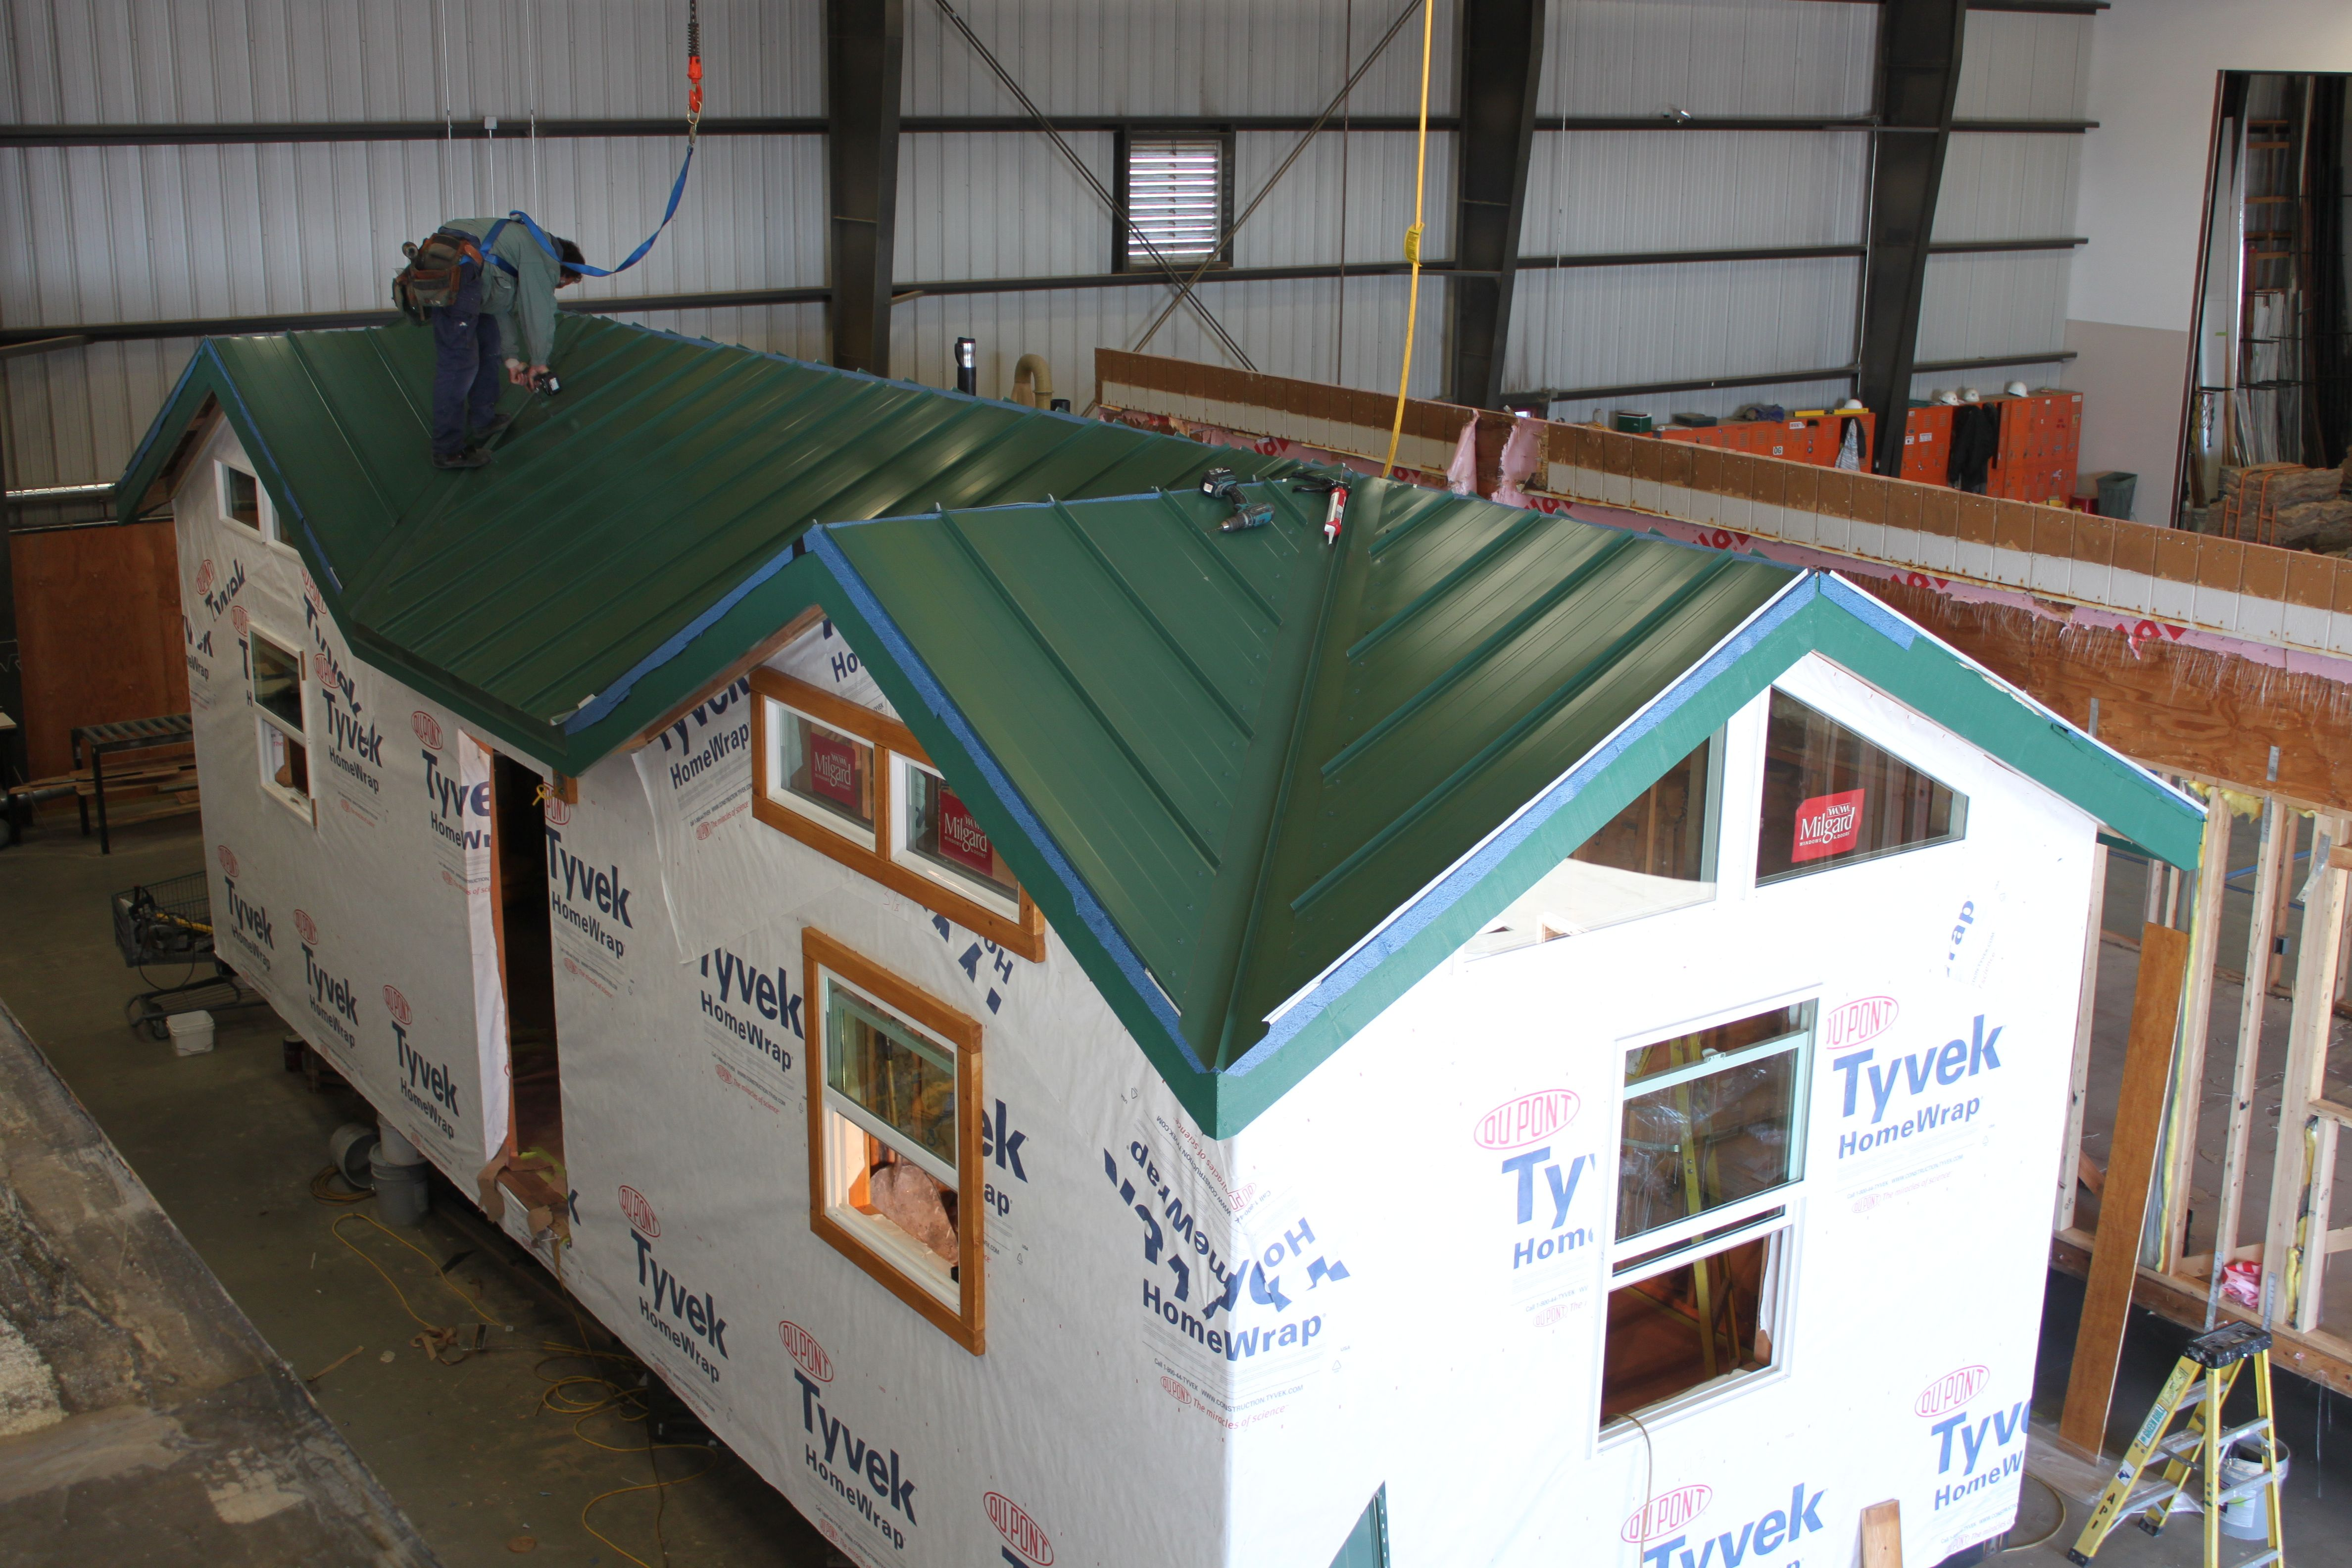 Green Tin Roof Added This Is A Two Bedroom One Bathroom Custom Cabin To Be Used As A Guest Quarters On Private Proper Building A Cabin Private Property Cabin